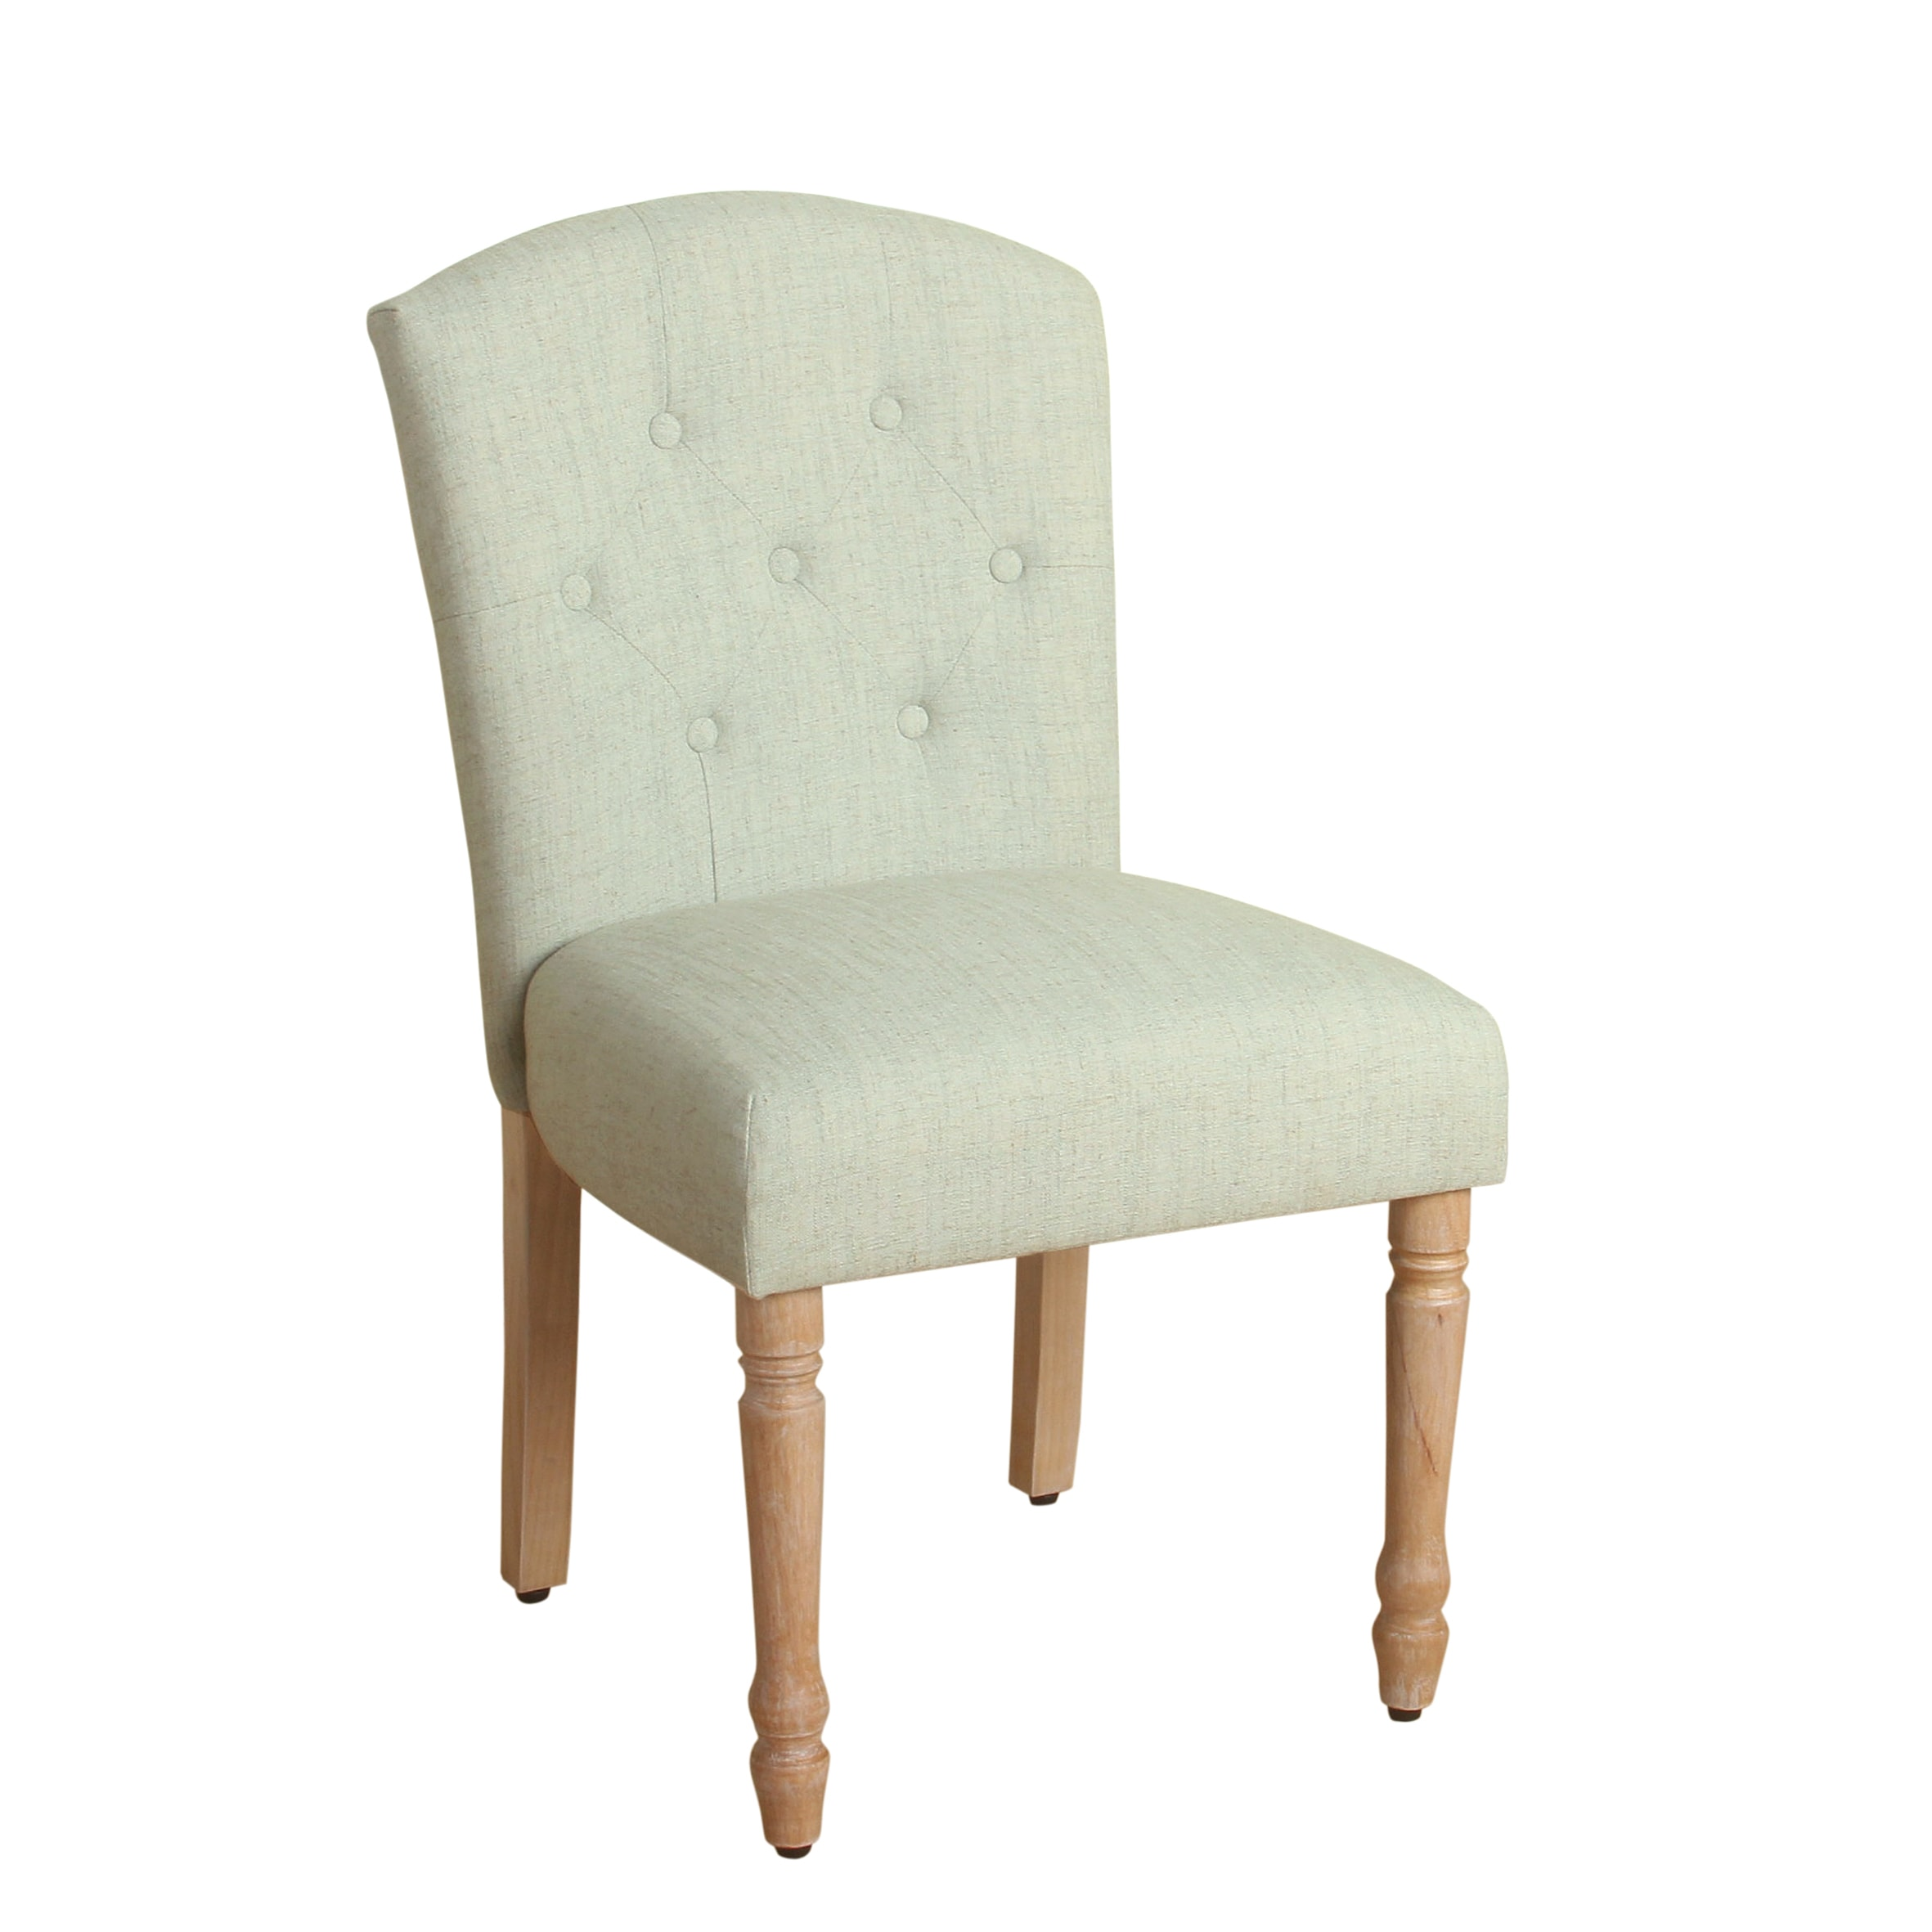 Homepop Delilah Button Tufted Dining Chair Pale Blue Single